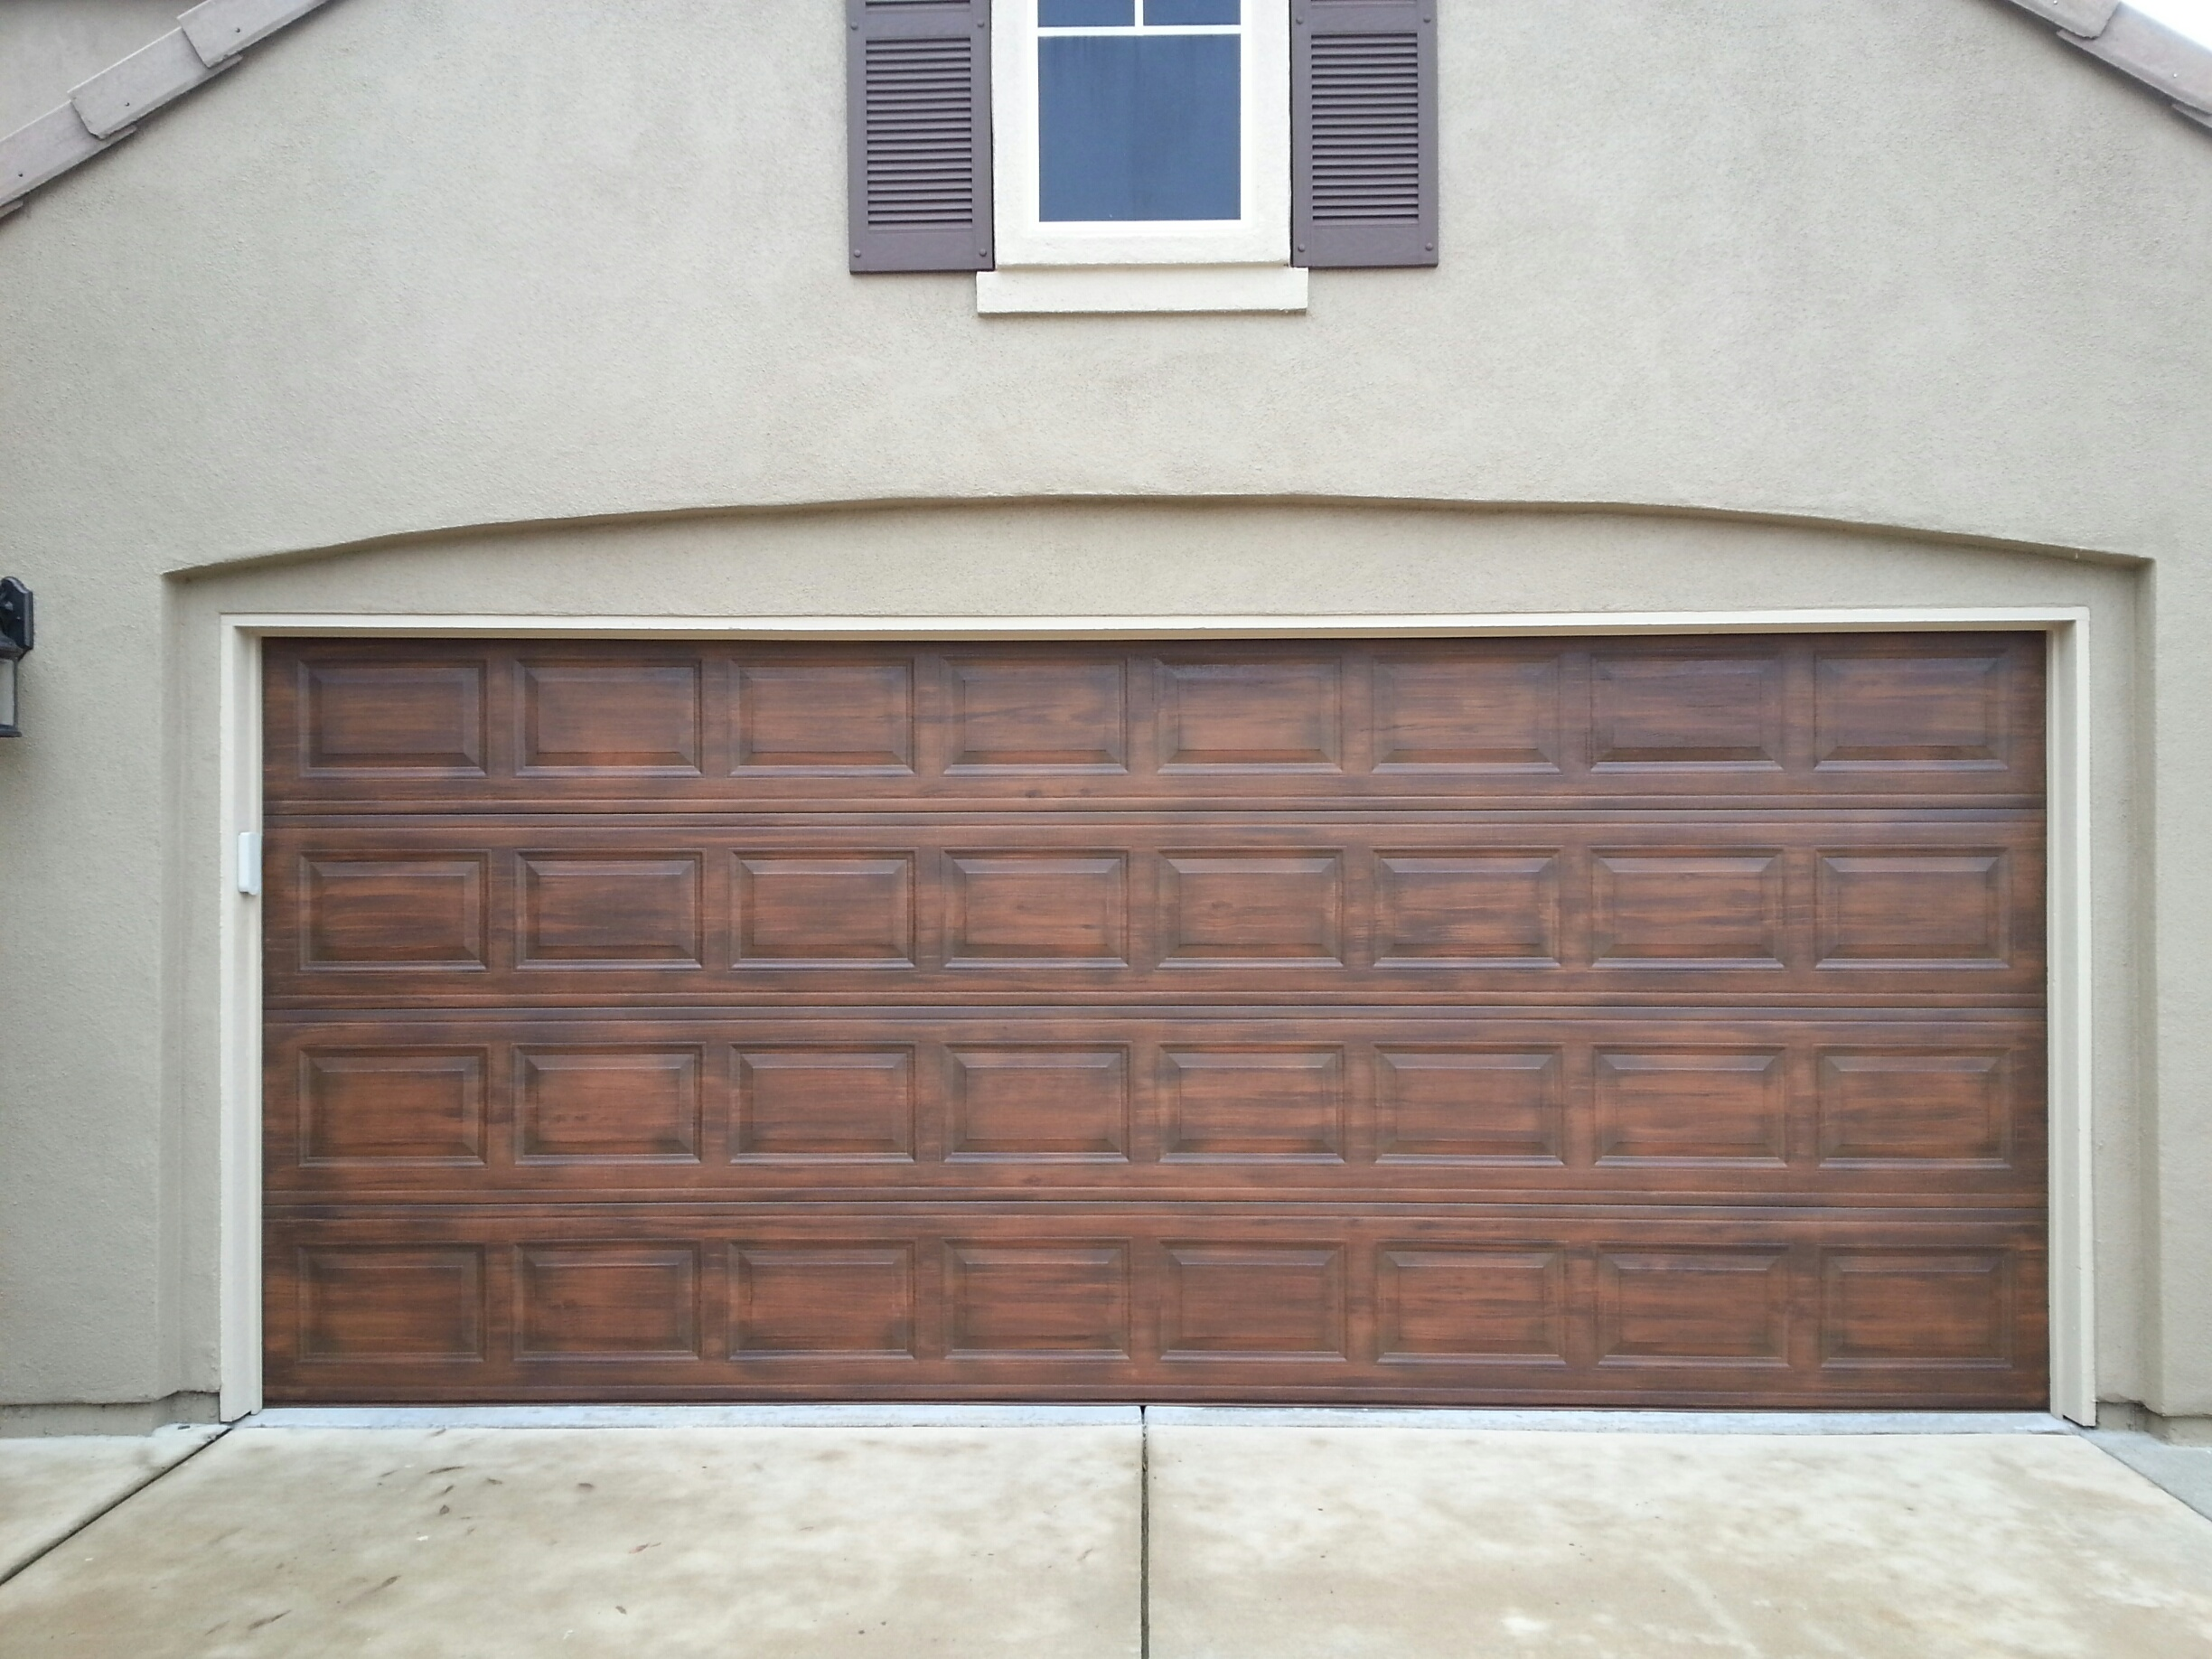 full quote appealing design splendid lowes a door remarkable doors for fabulous size request depot home of unreal garage translucent